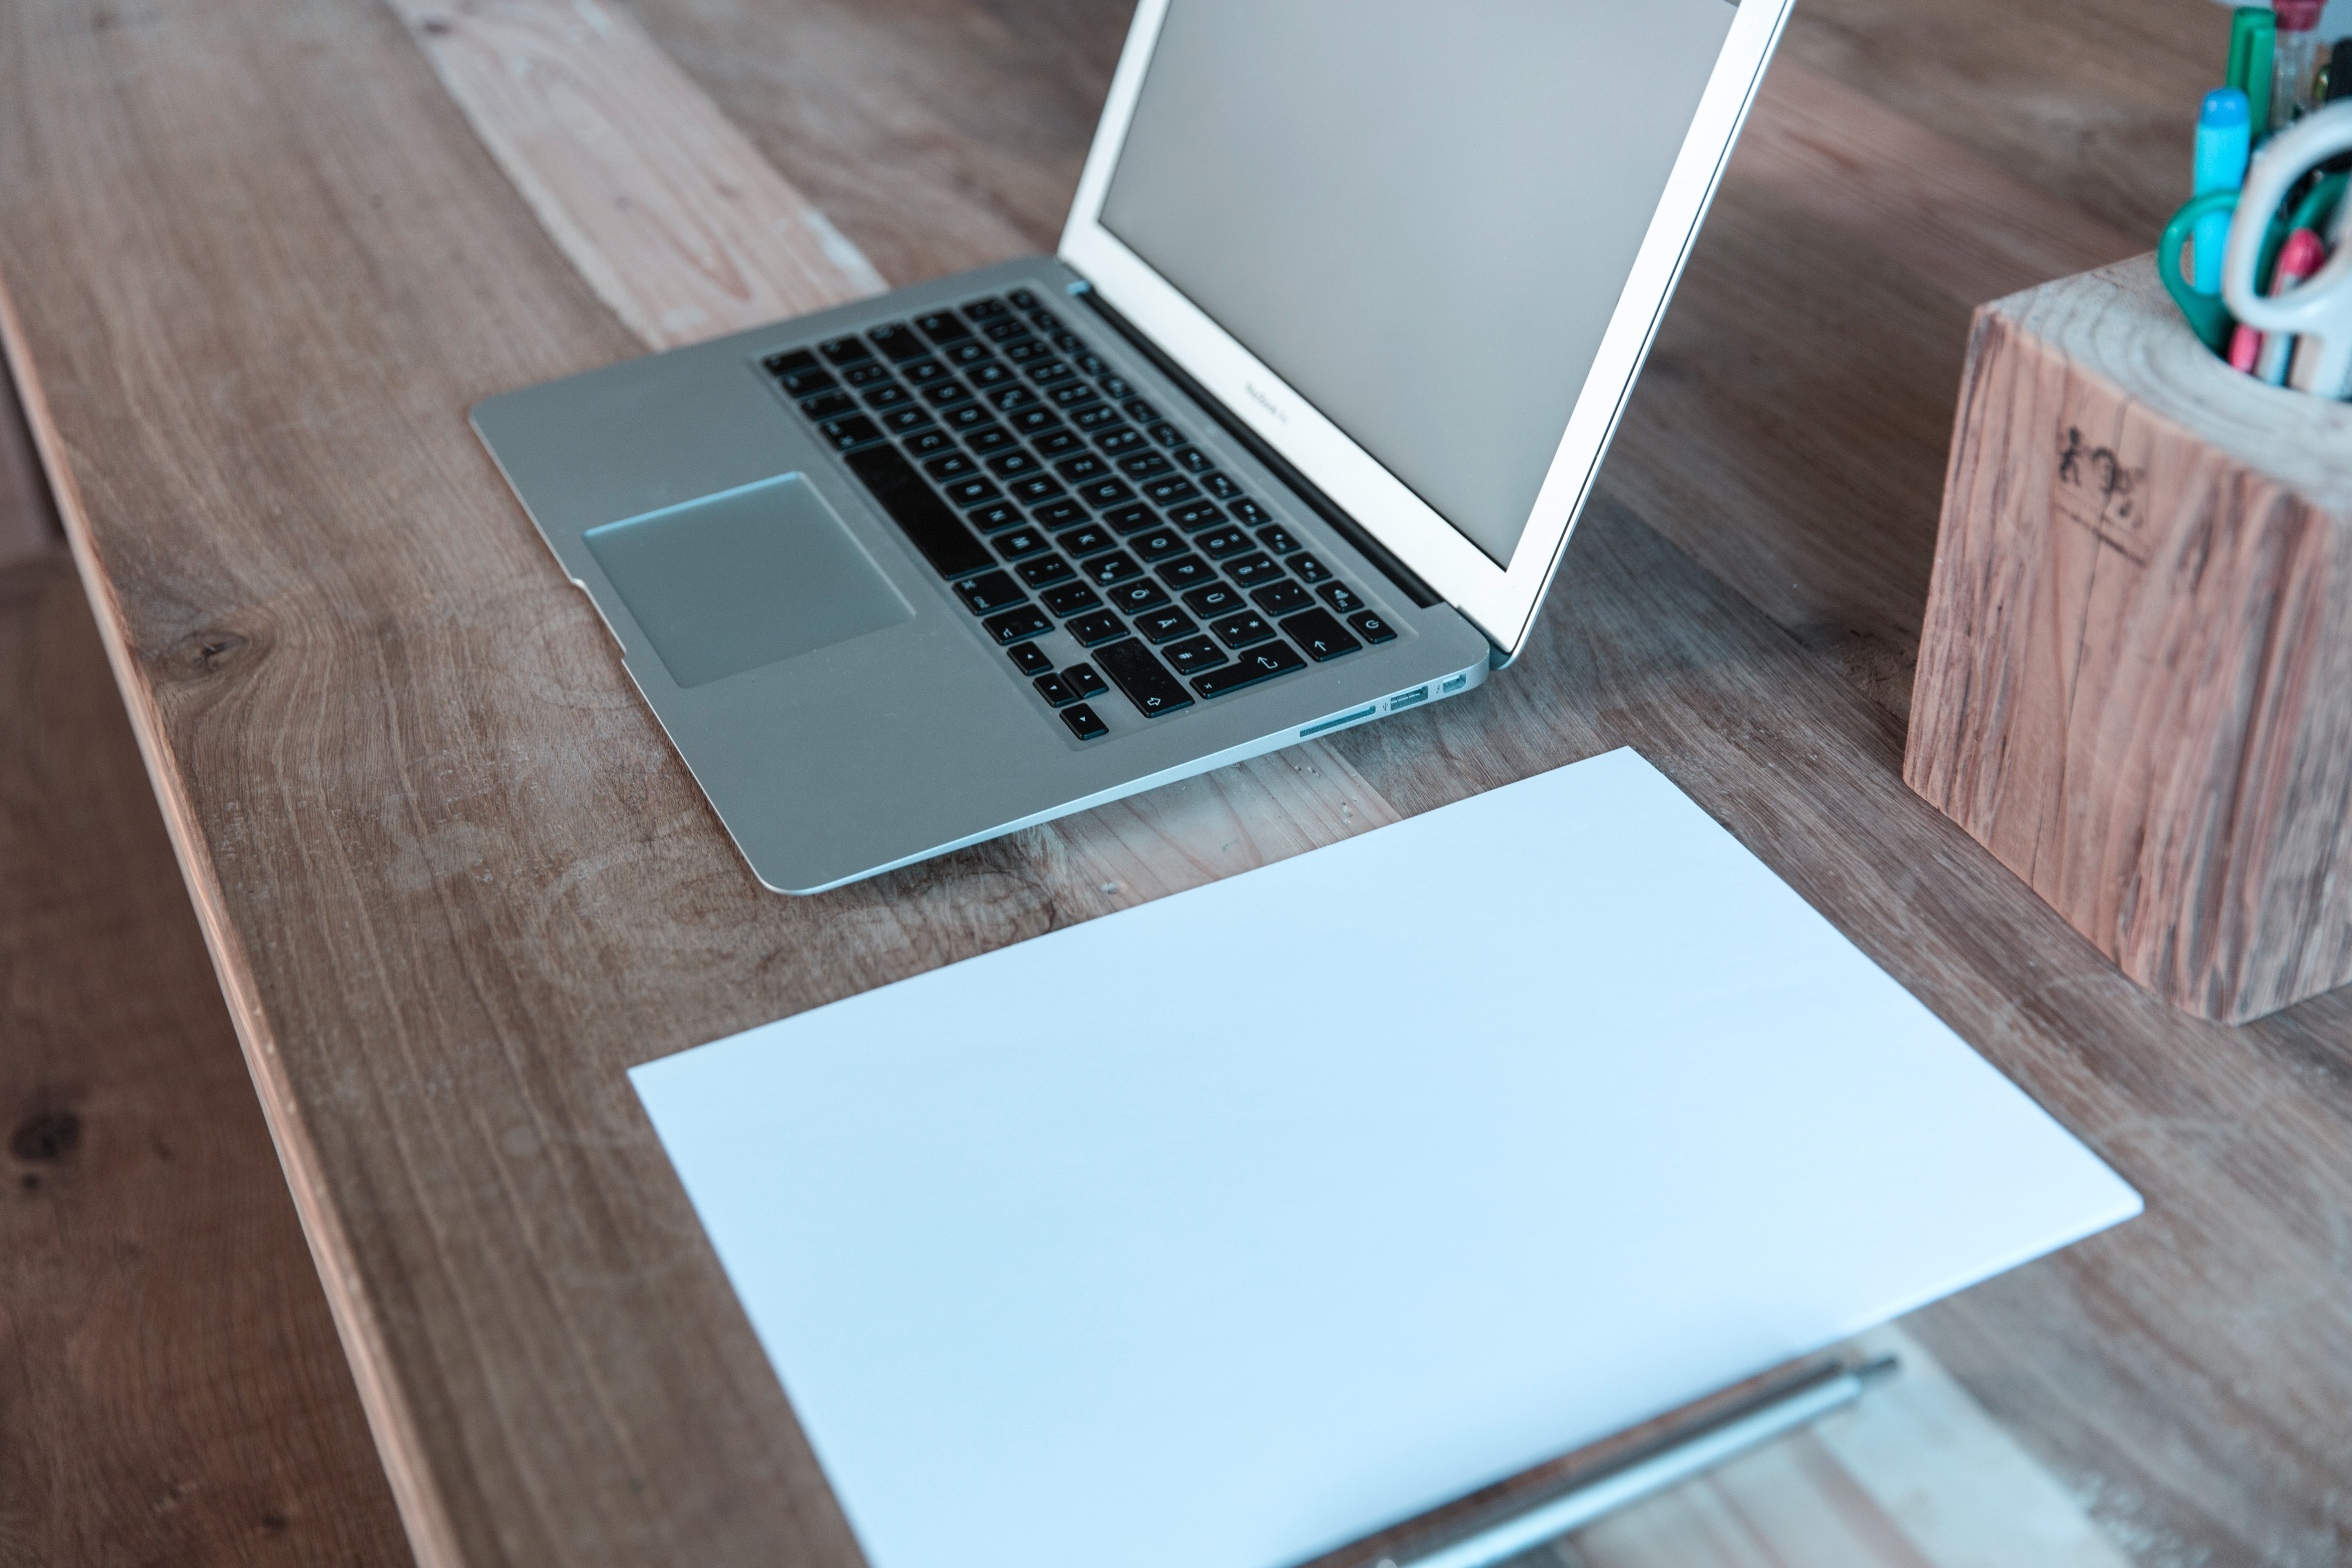 A sheet of white paper next to a MacBook on a wooden desk